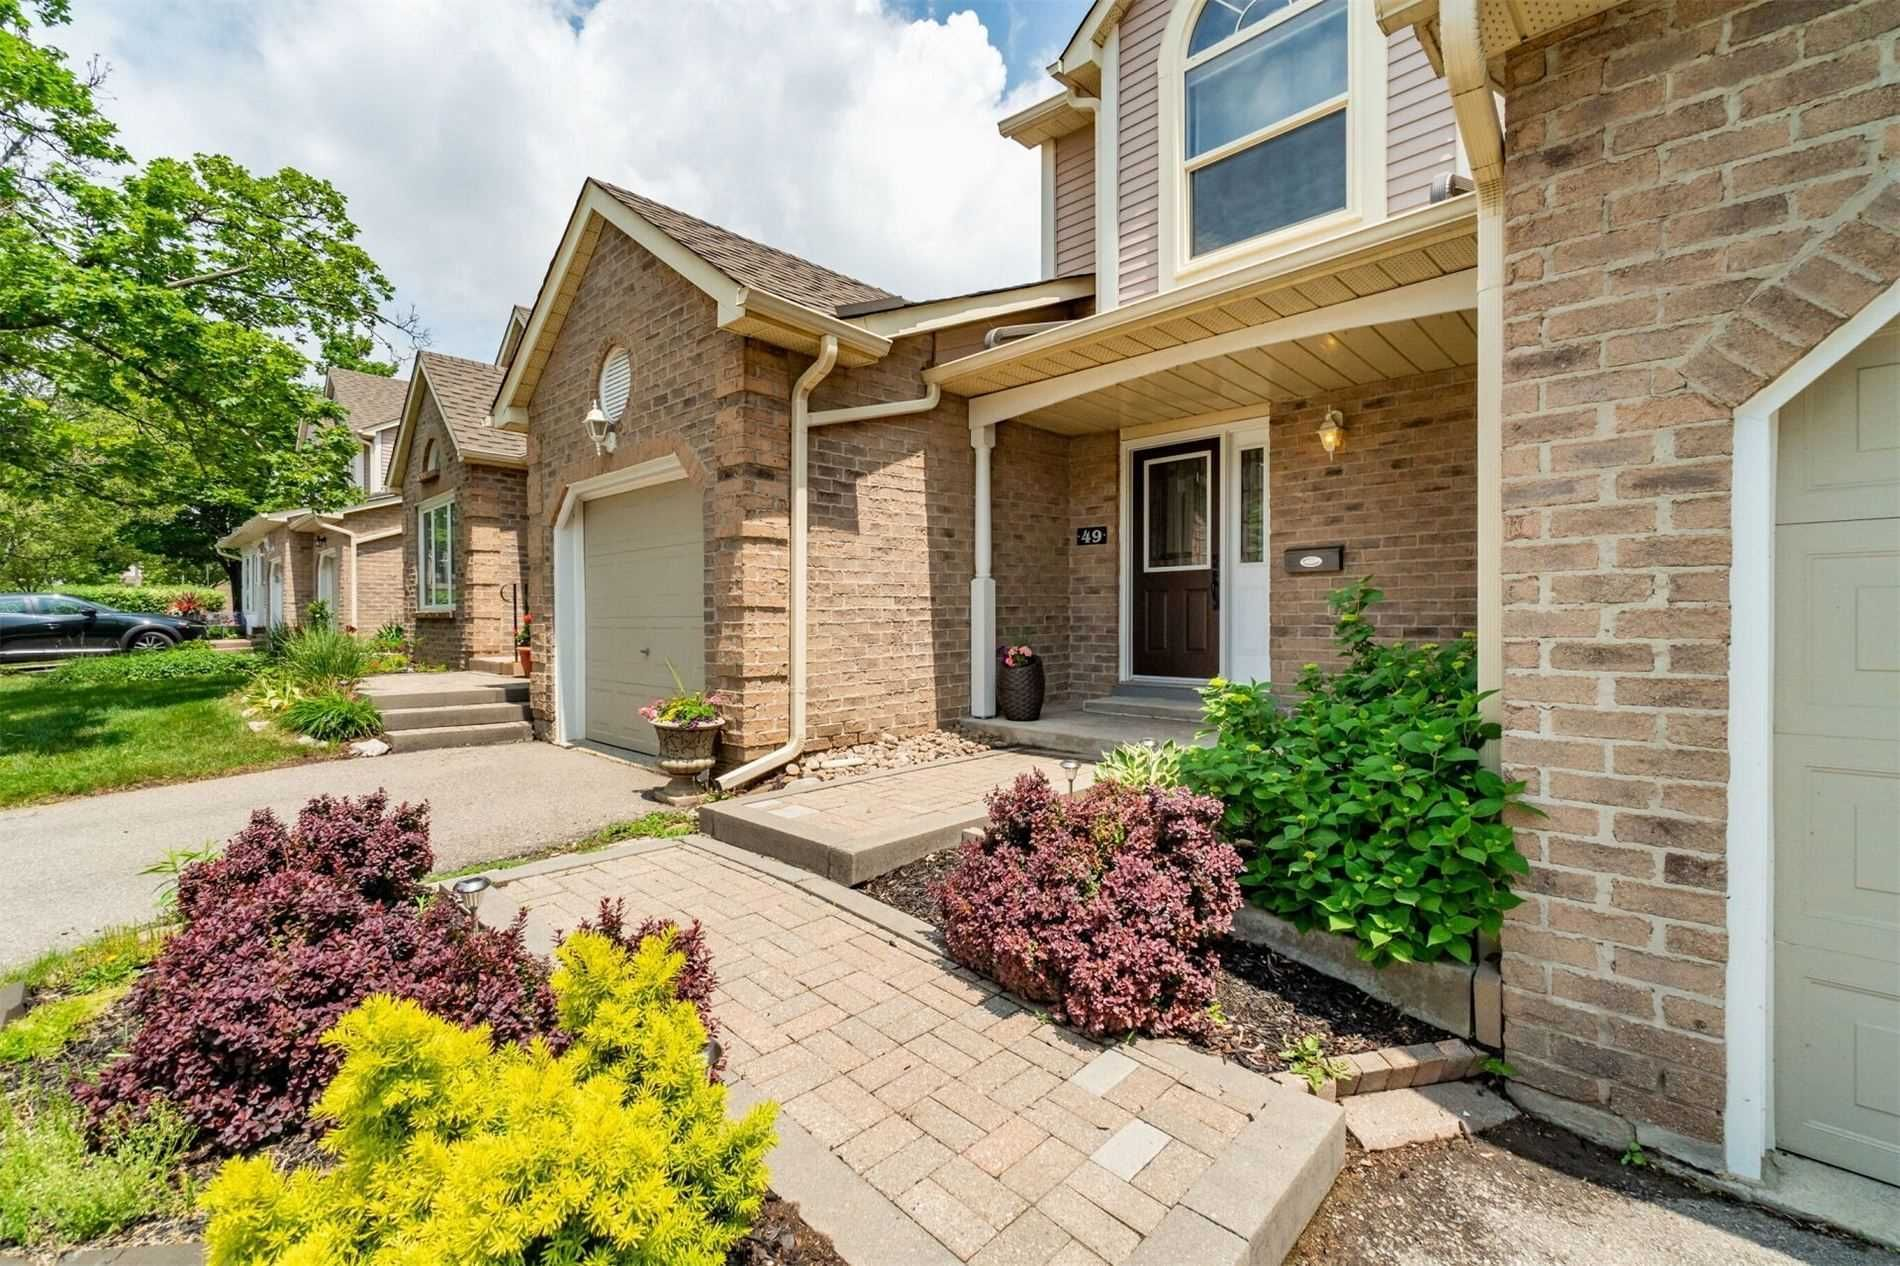 5255 Lakeshore Rd, unit 49 for sale in Toronto - image #2